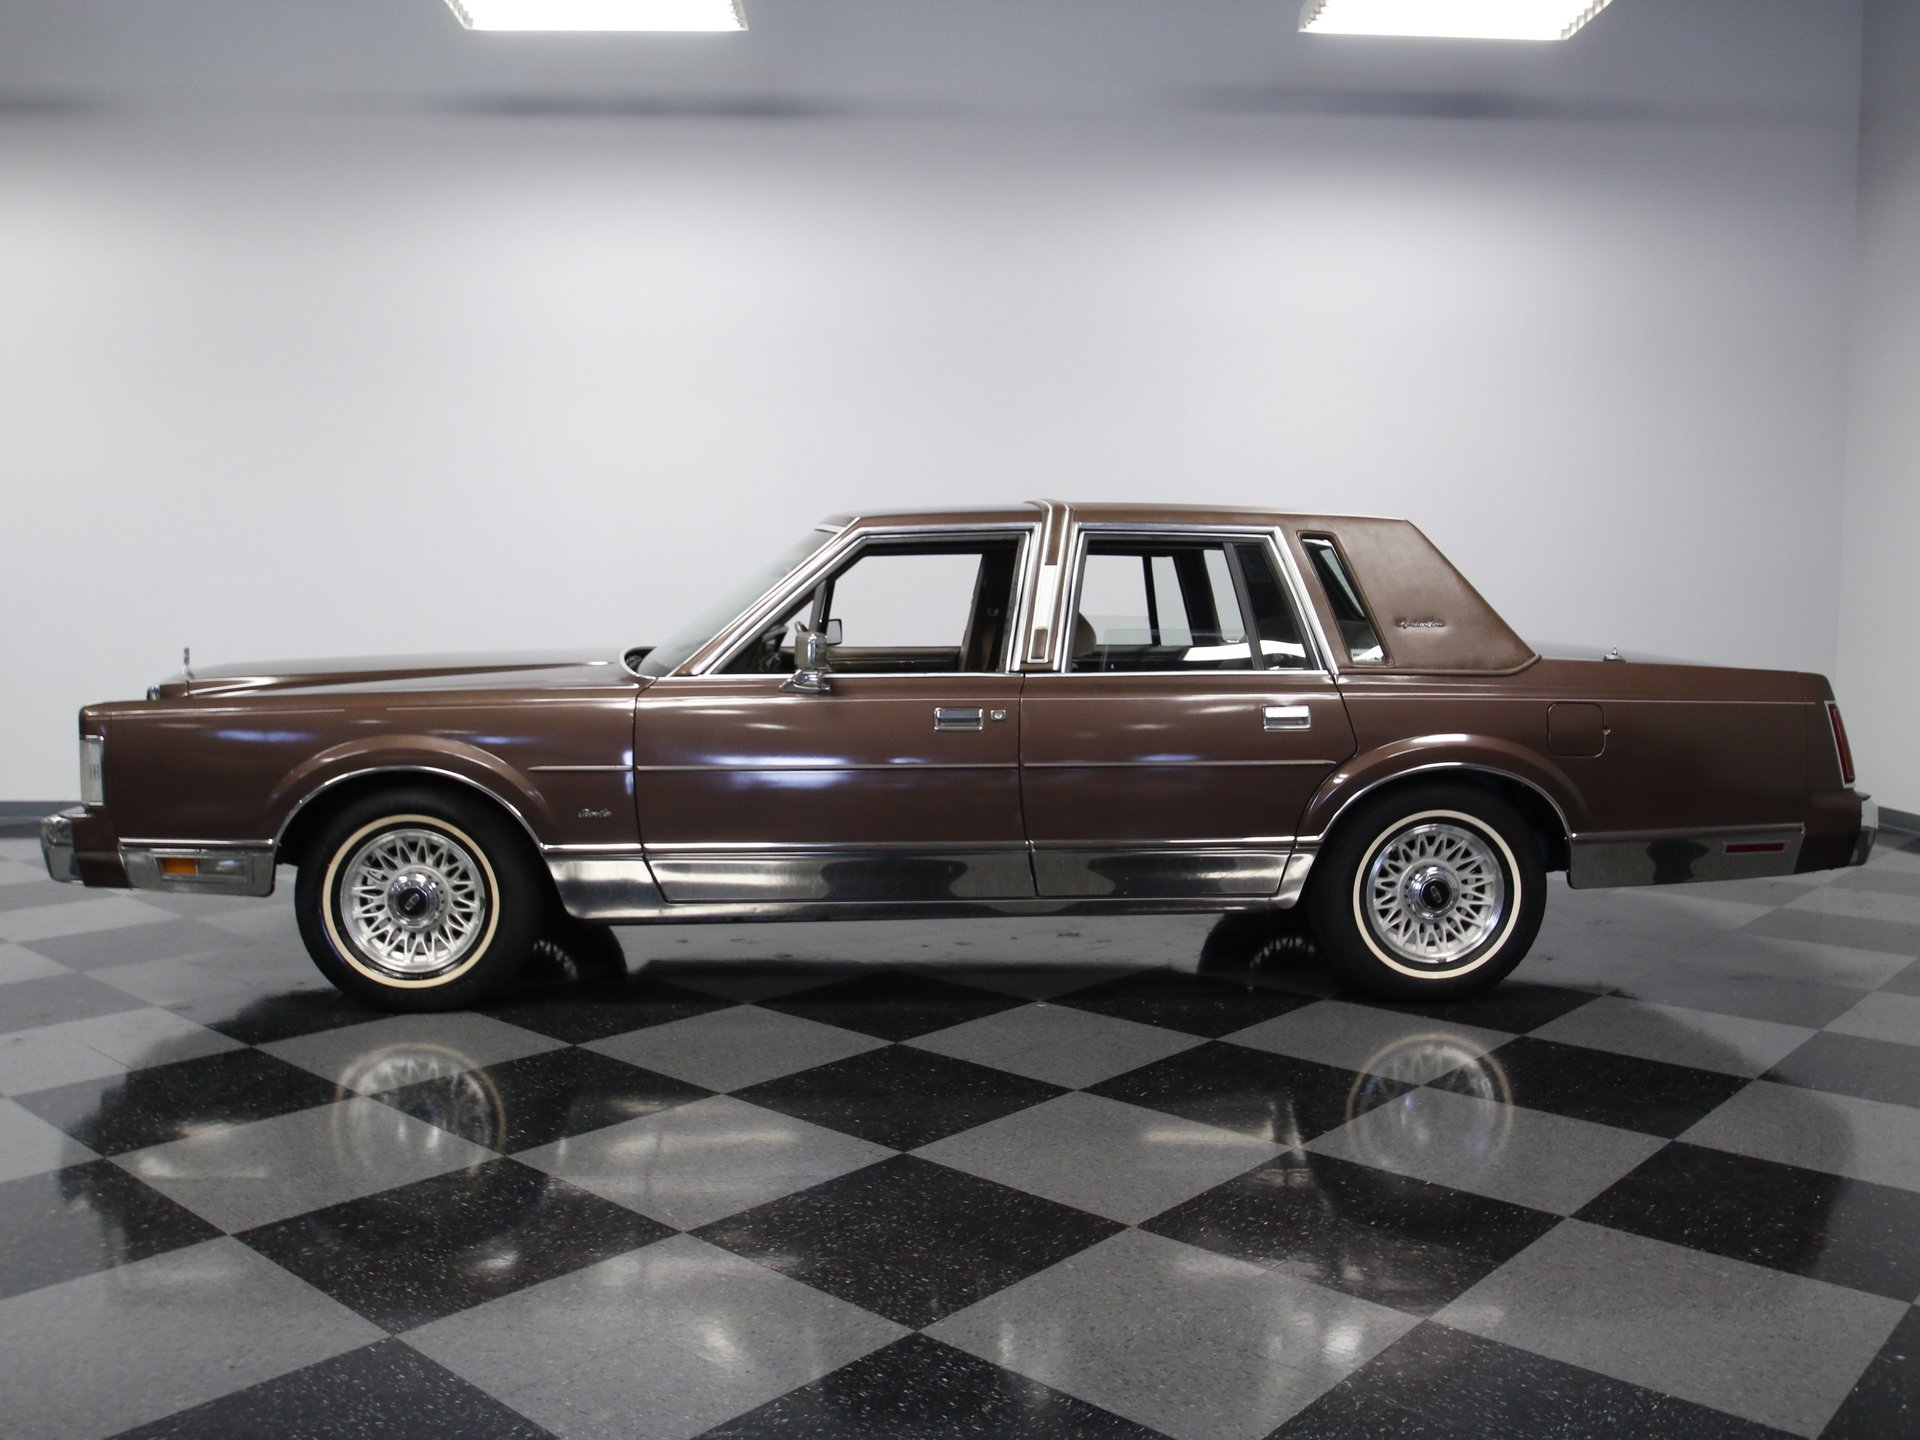 1987 Lincoln Town Car Streetside Classics The Nations Trusted 1941 View 360